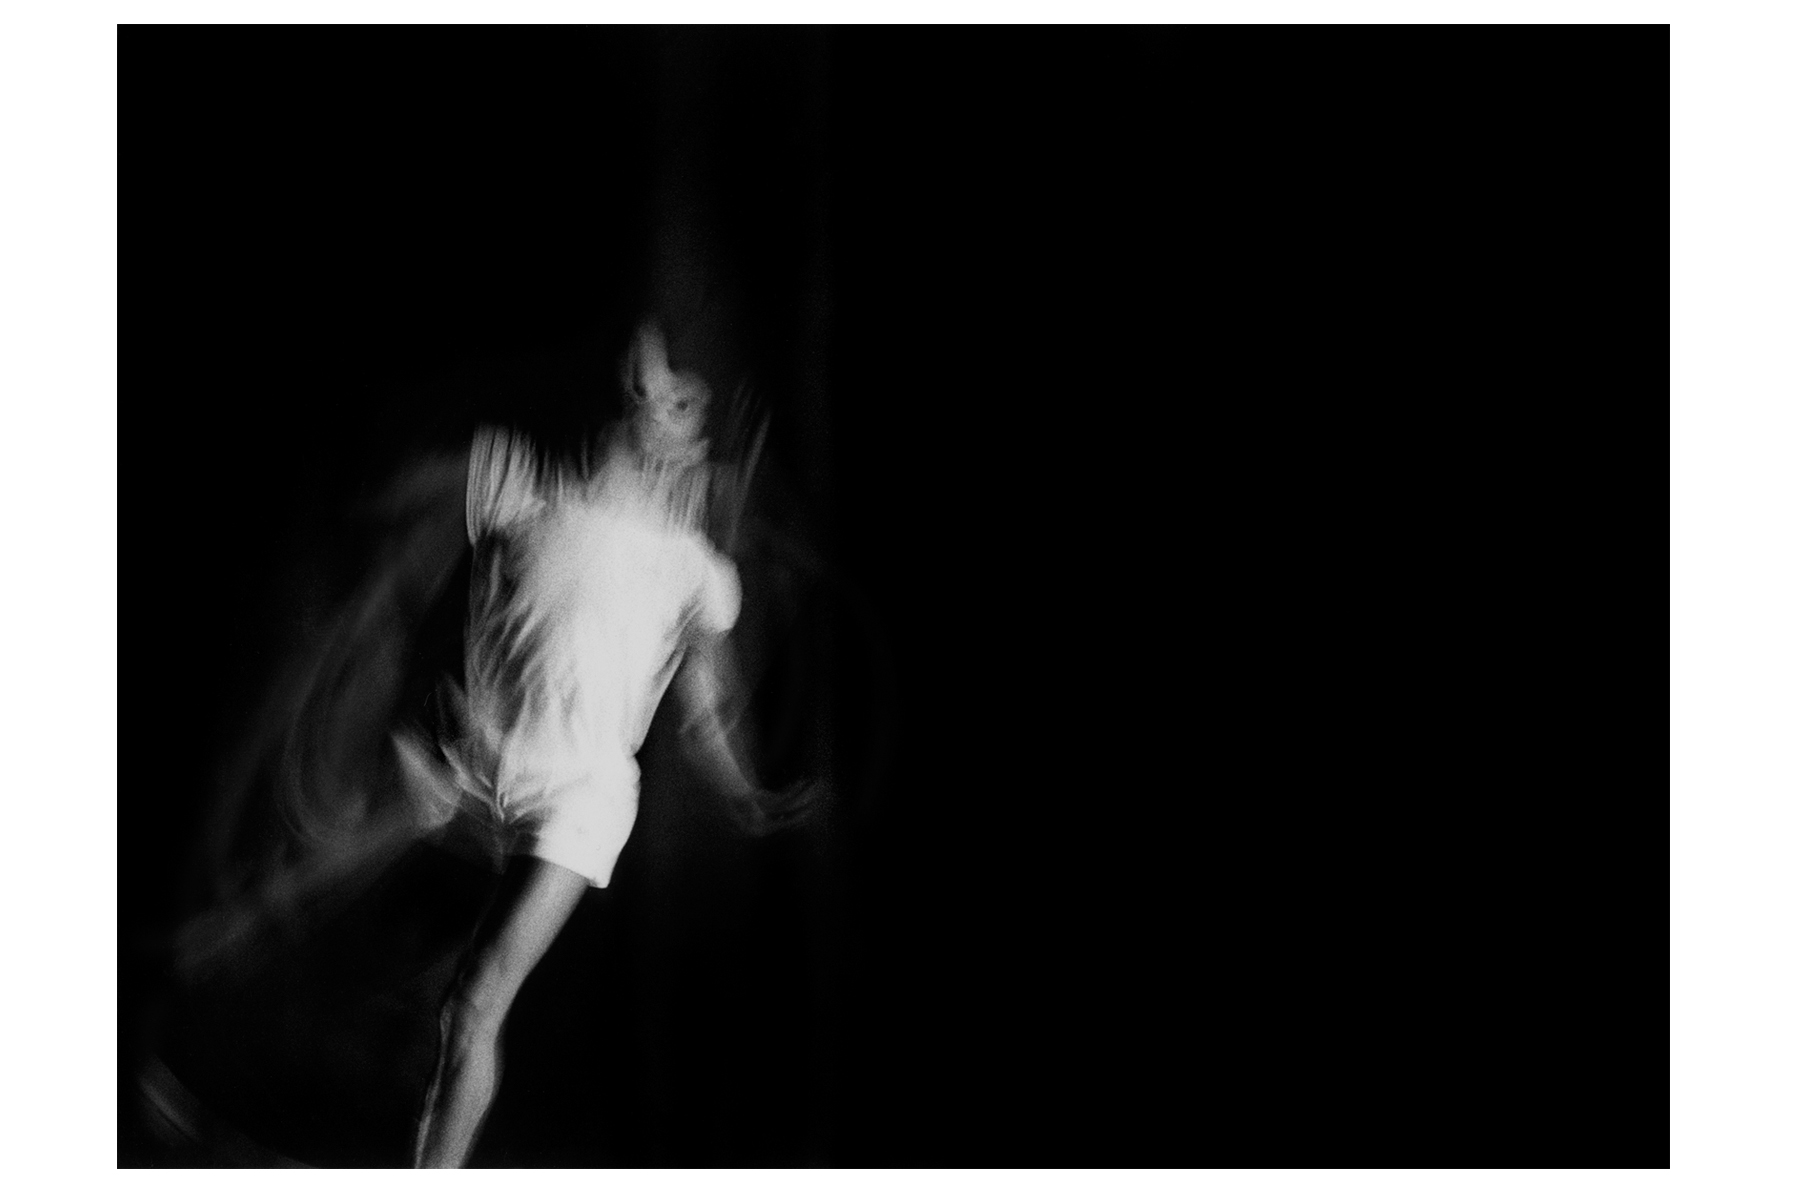 Donald Bernard. Dance Series 1: Dance a Metaphor for Life, 1984. Black and White Giclee Photograph, 4″x6″